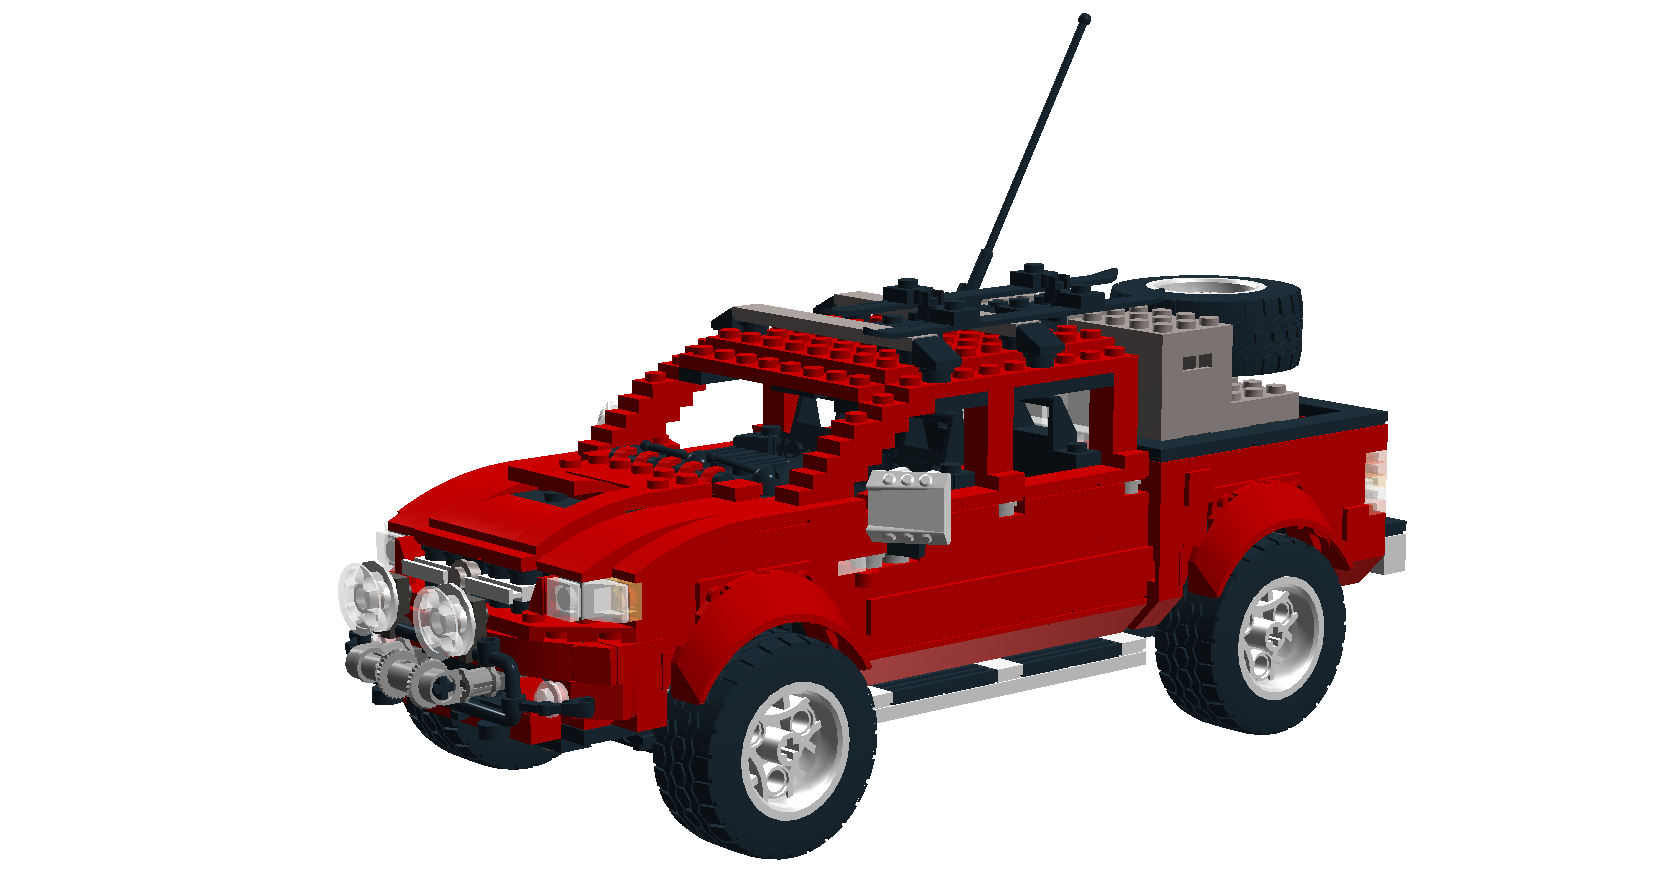 toyota_hilux_an10_2004_top_gear.png